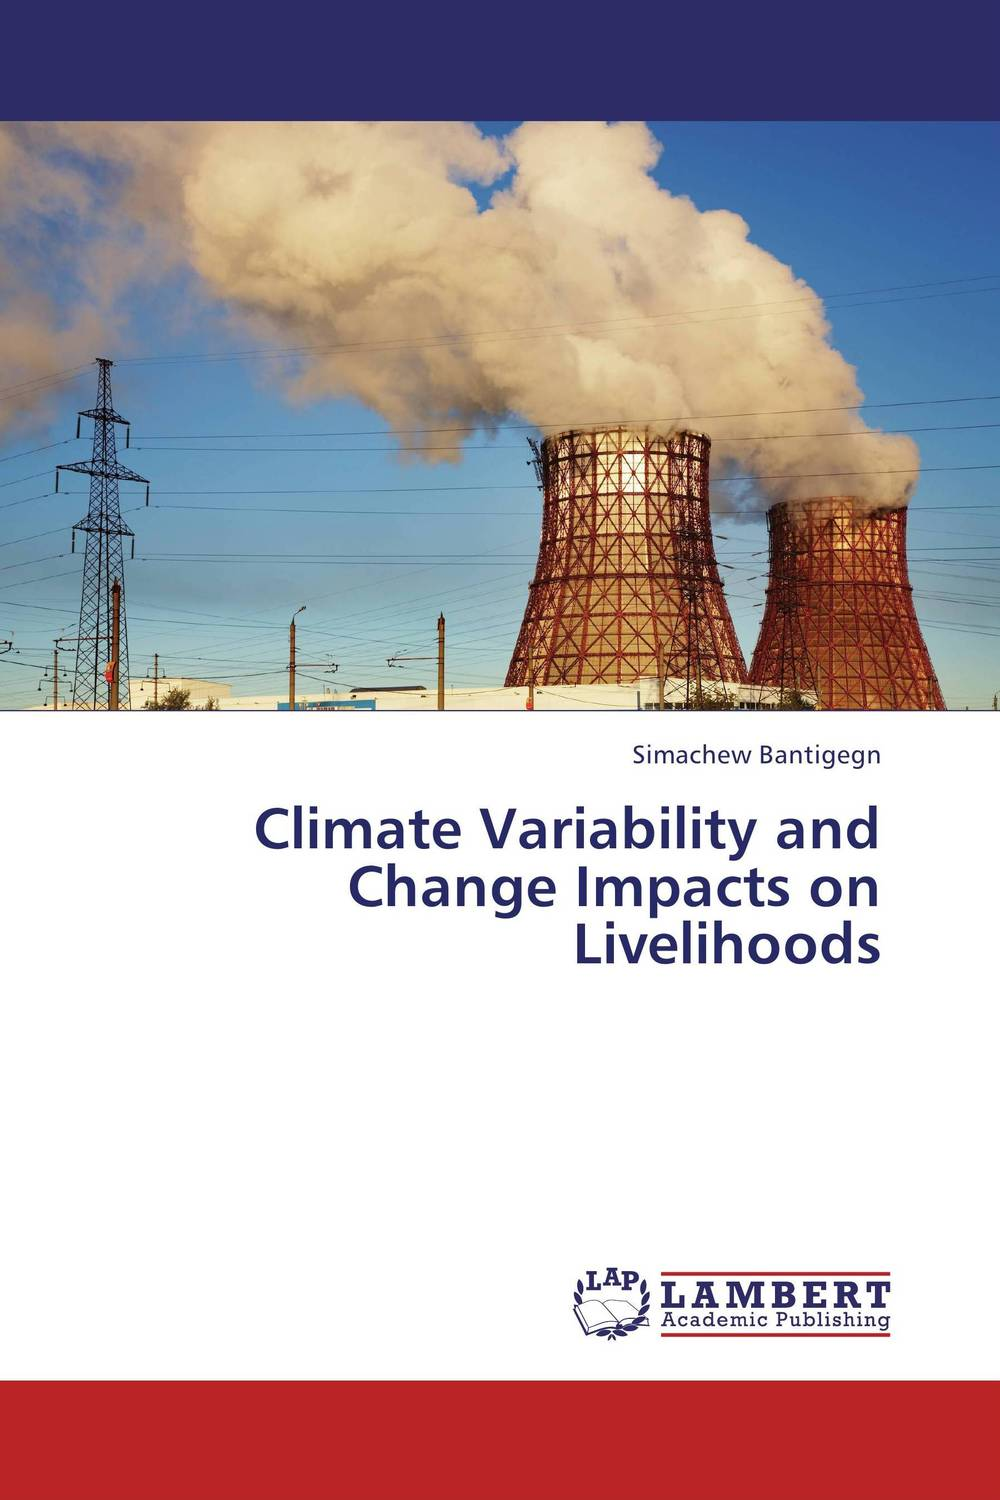 Climate Variability and Change Impacts on Livelihoods suh jude abenwi the economic impact of climate variability